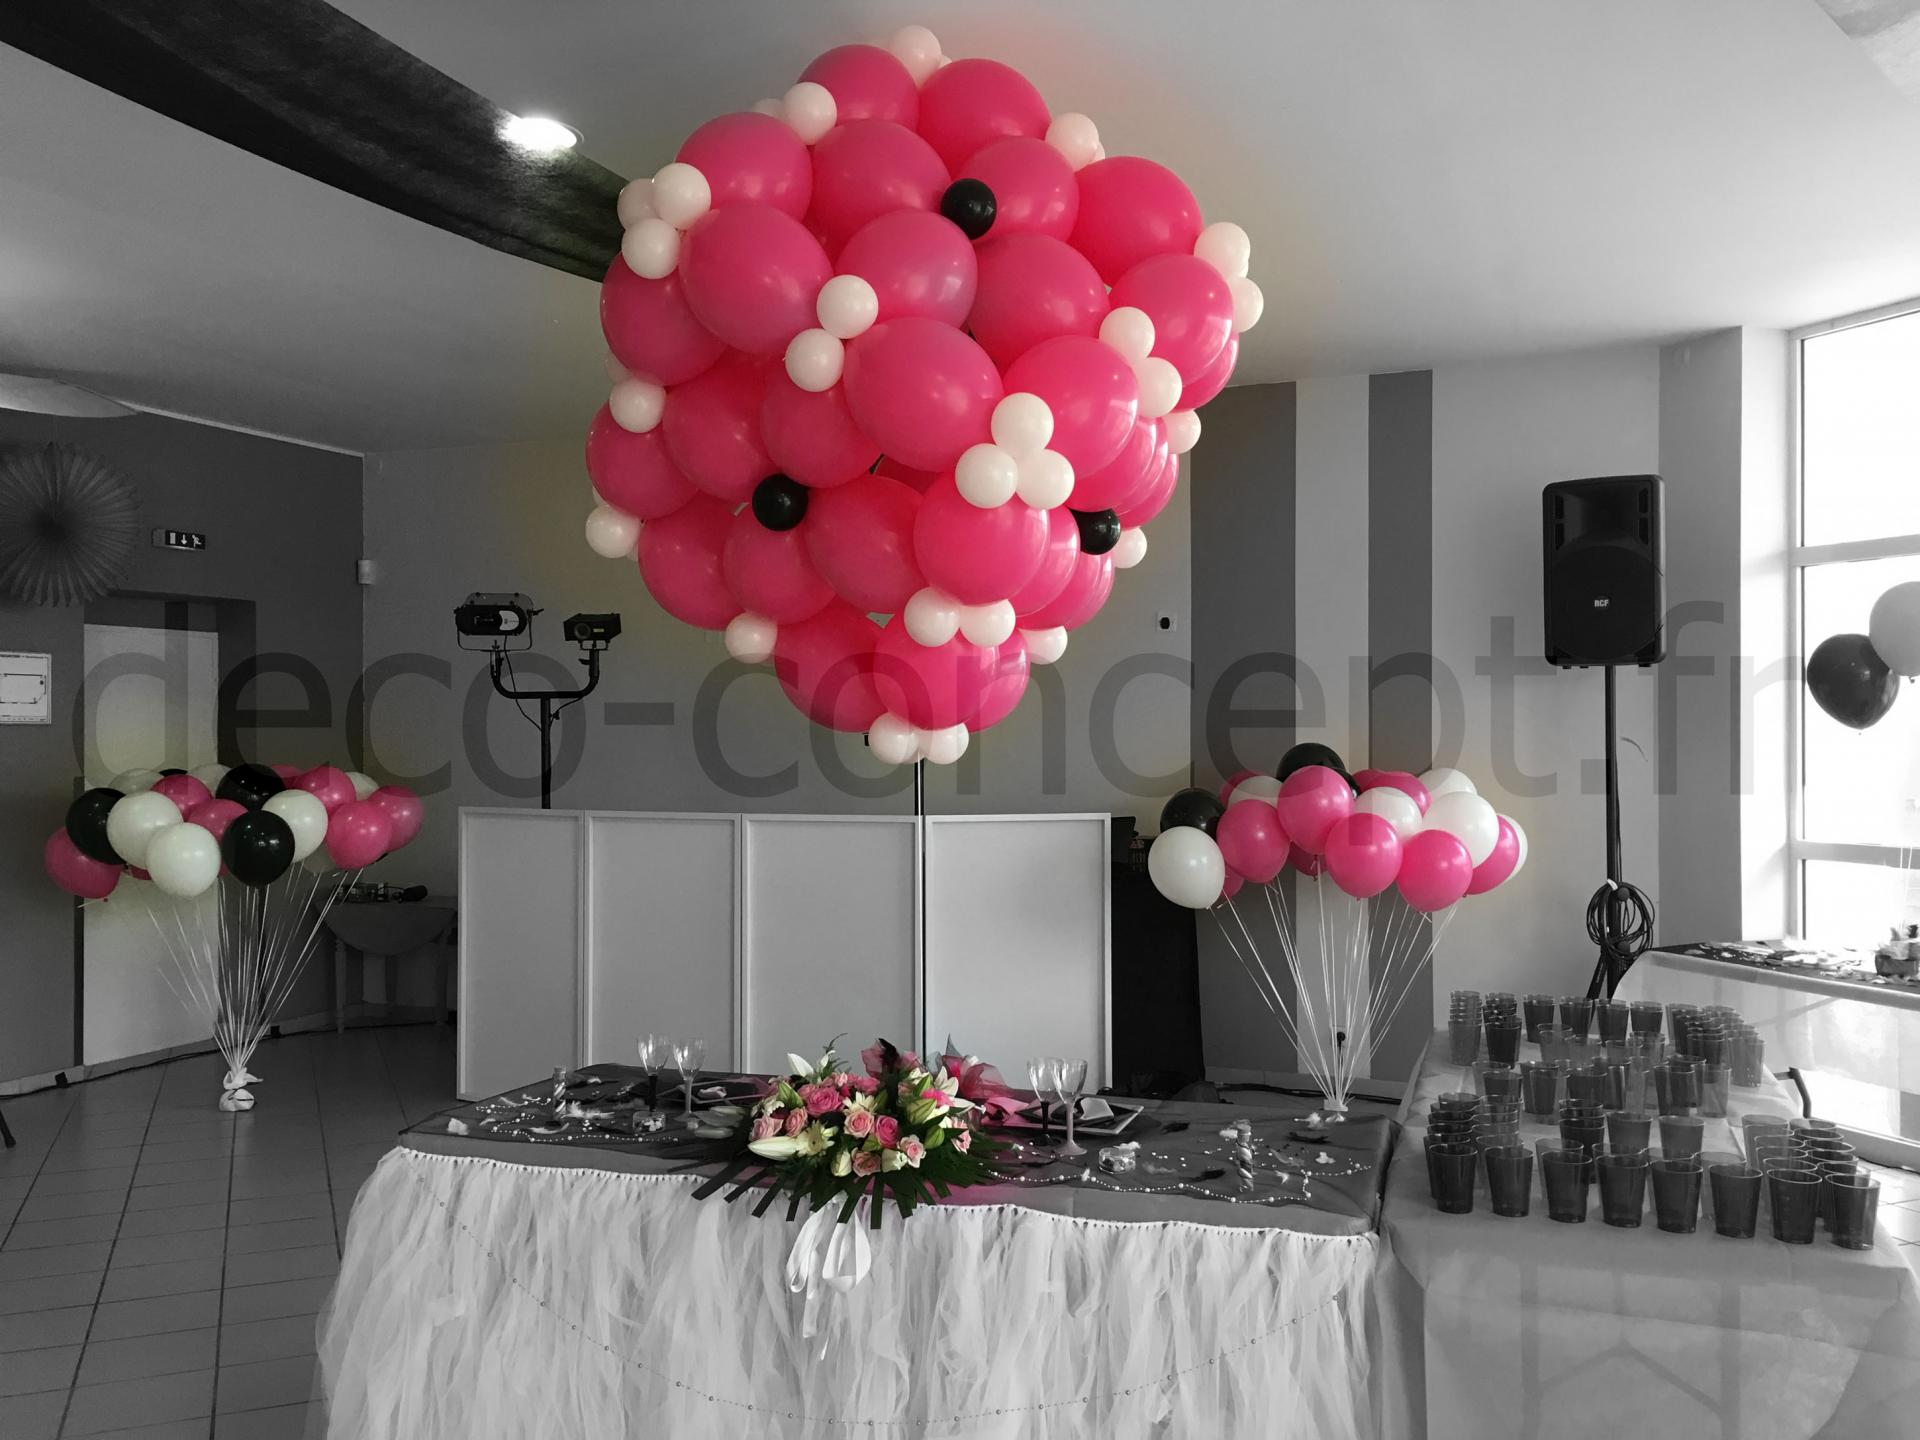 decoration avec ballon excellent facile la dcoration avec des ballons with decoration avec. Black Bedroom Furniture Sets. Home Design Ideas